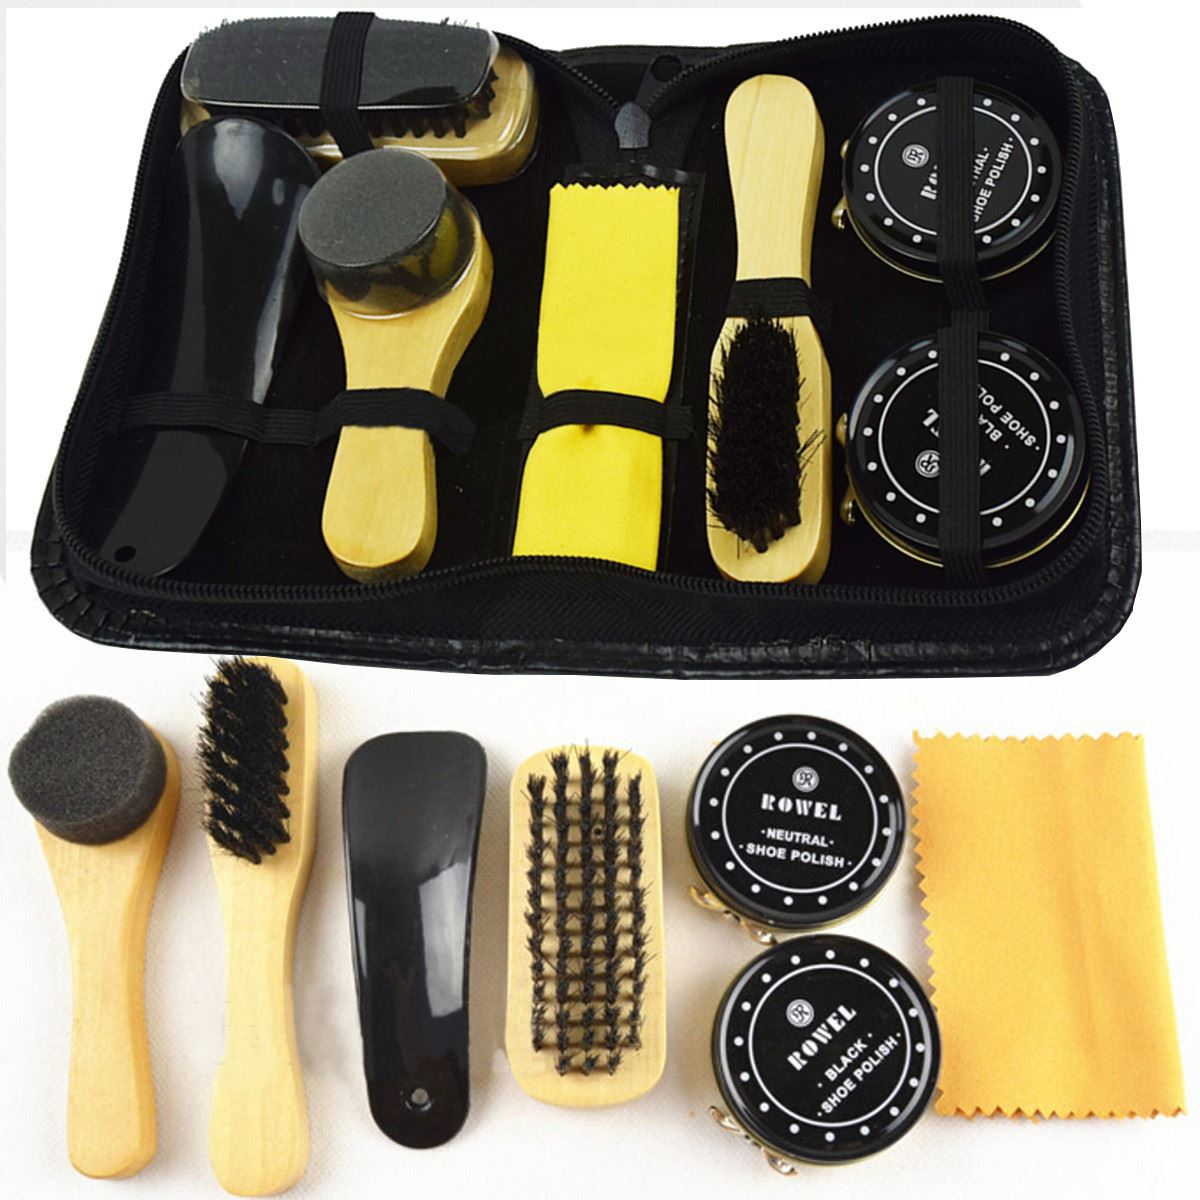 7 Pcs/Set Pro Shoes Care Kit Portable For Boots Sneakers Cleaning Set Polish Brush Shine Polishing Tool For Leather Shoes eykosi quick shine shoes sponge brush polish wax dust cleaner cleaning tool colorless